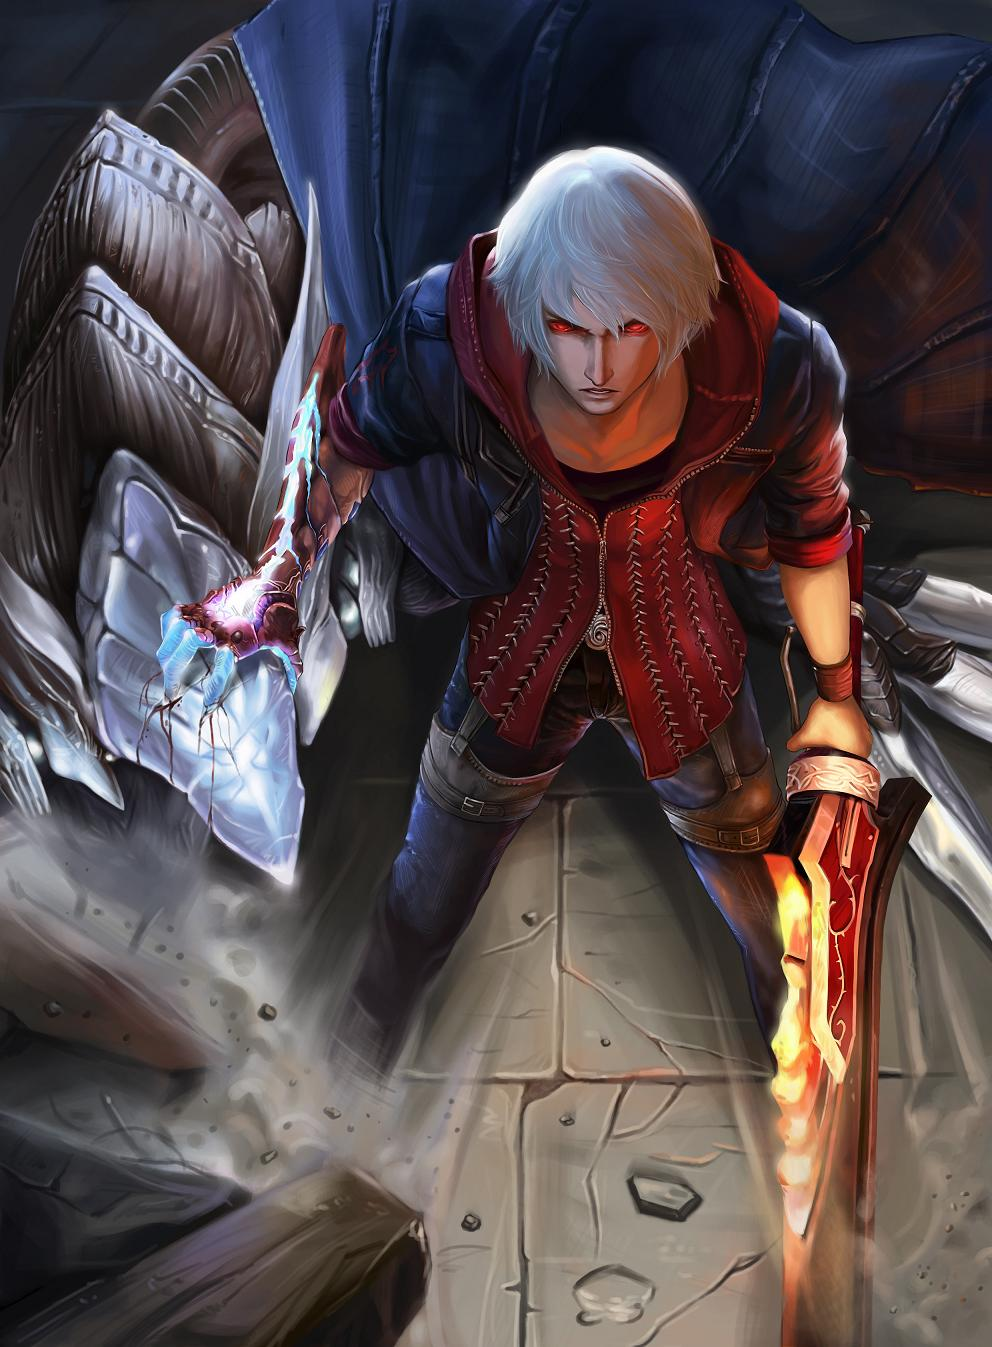 Nero Devil May Cry Zerochan Anime Image Board